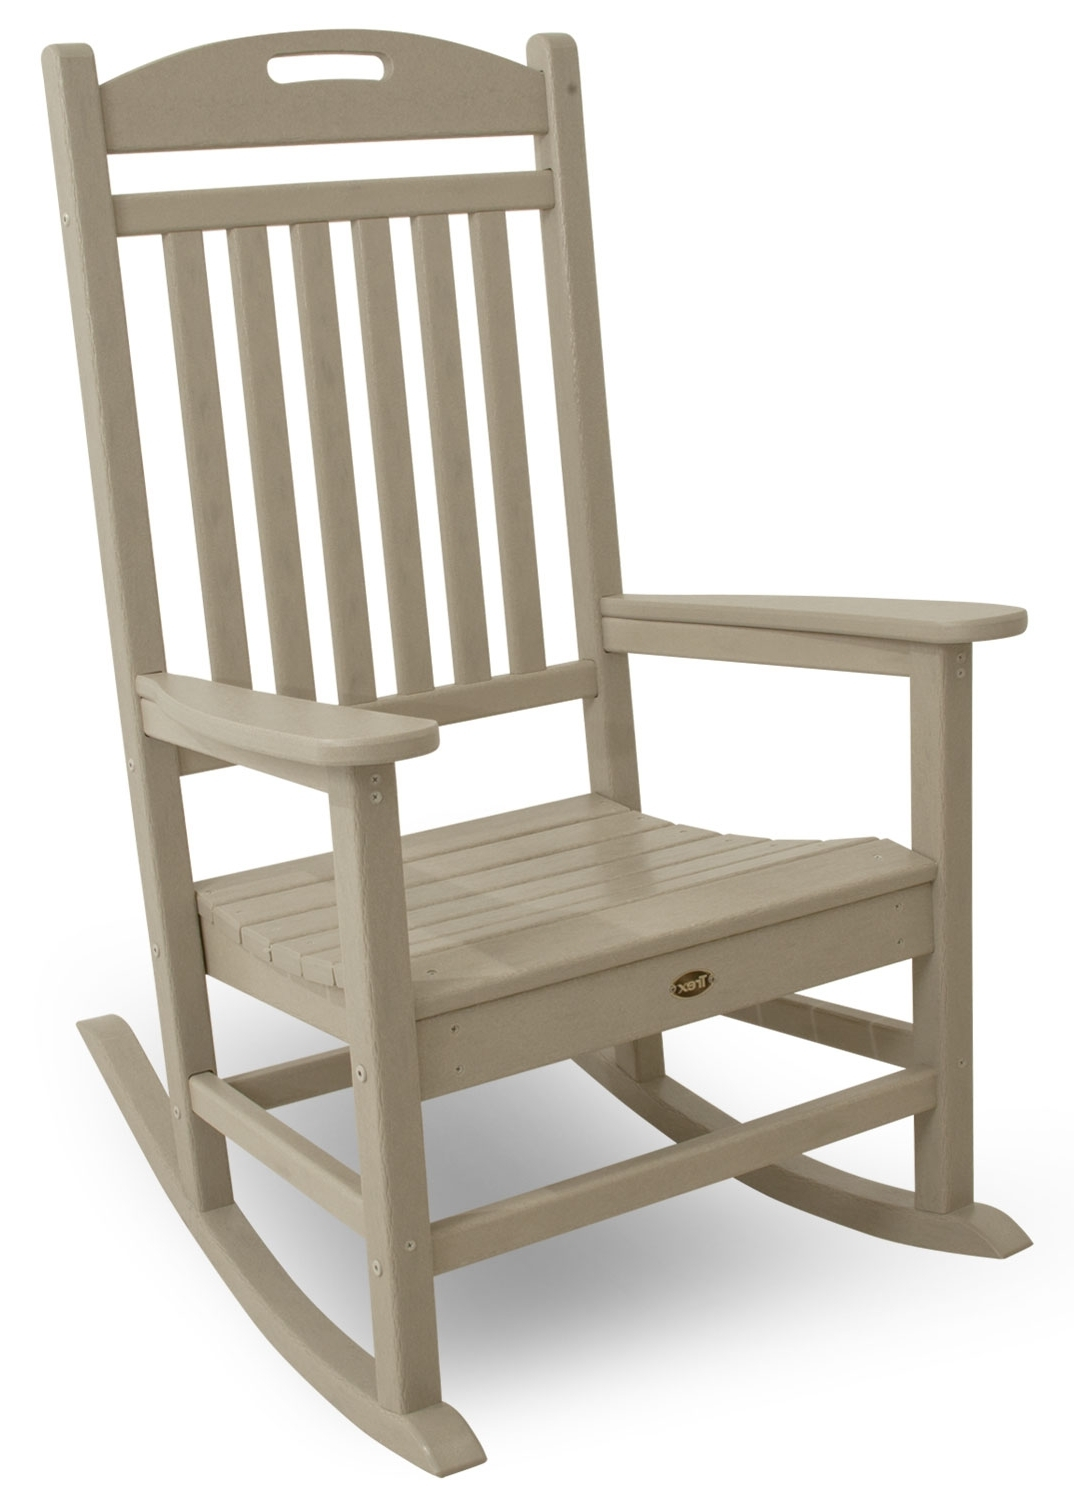 Outdoor Rocking Chairs Intended For Well Known Yacht Club Rocking Chair (View 15 of 15)